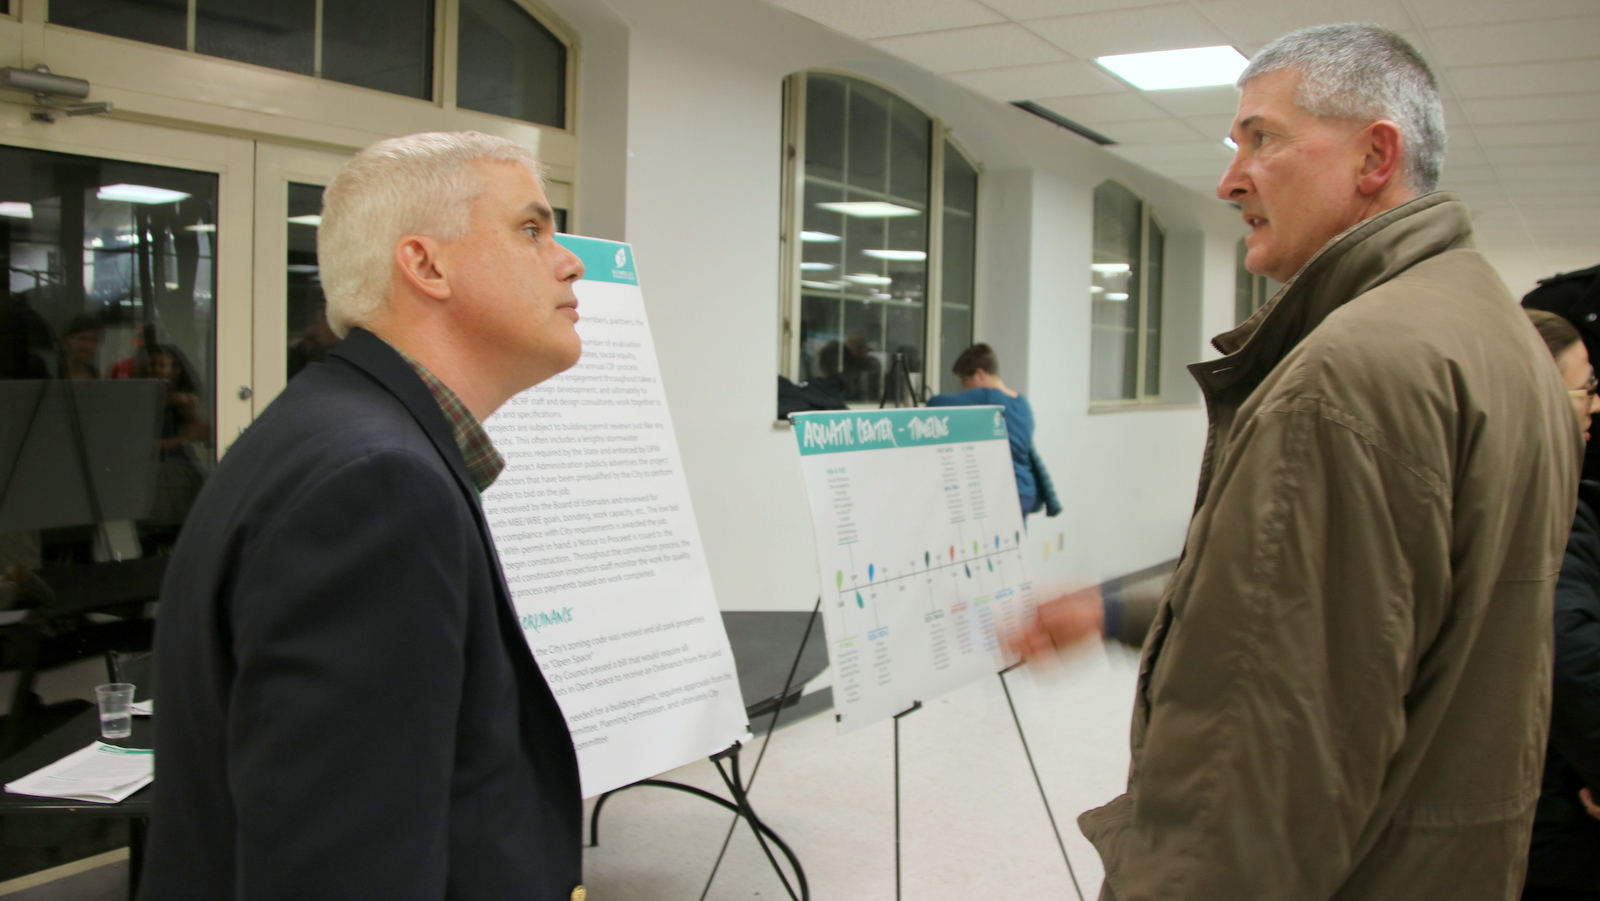 Druid Park Aquatic Center project manager answers questions at Recreation and Parks headquarters. (Fern Shen)